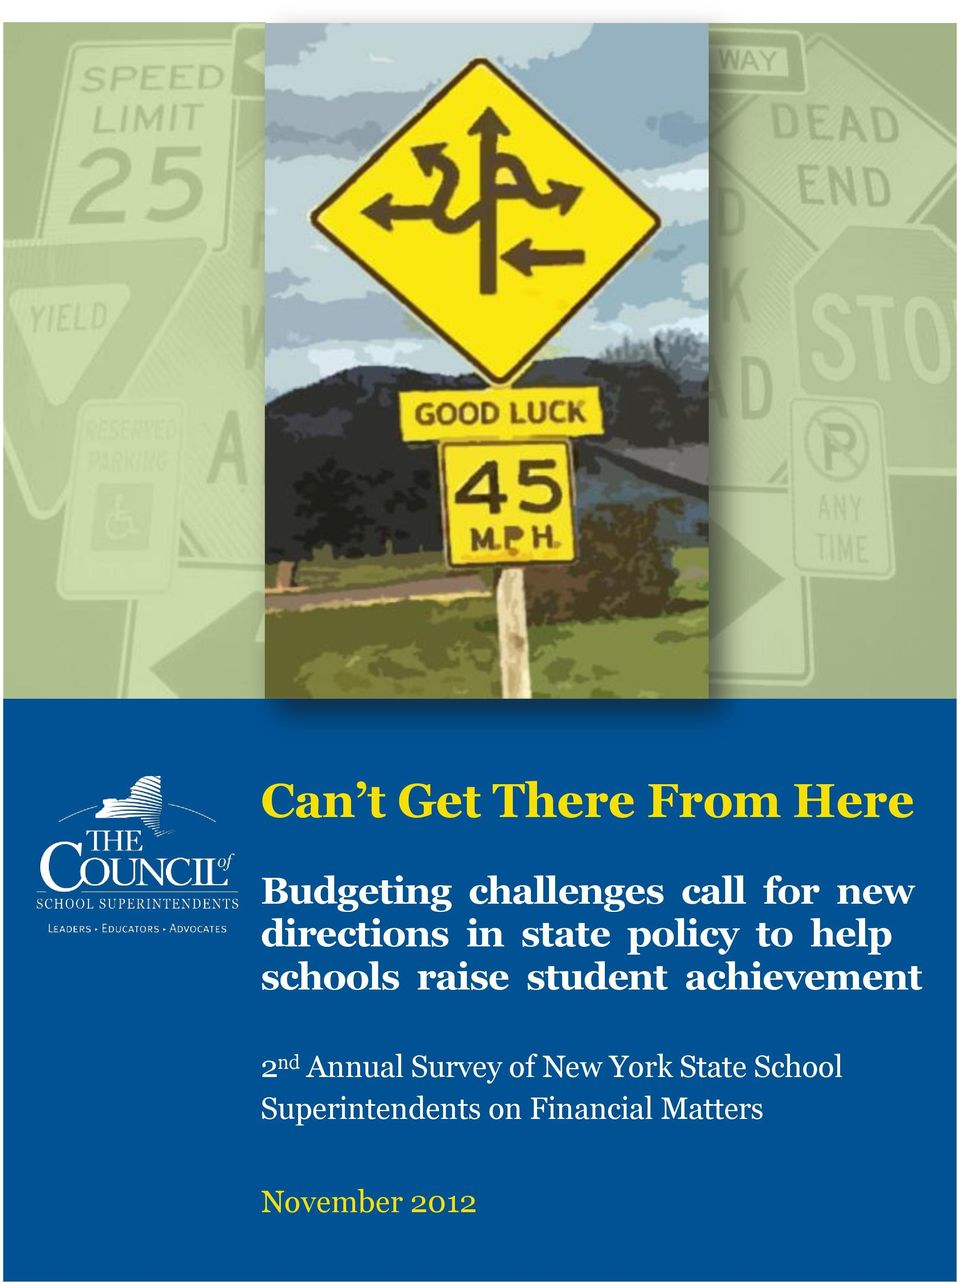 student achievement 2 nd Annual Survey of New York